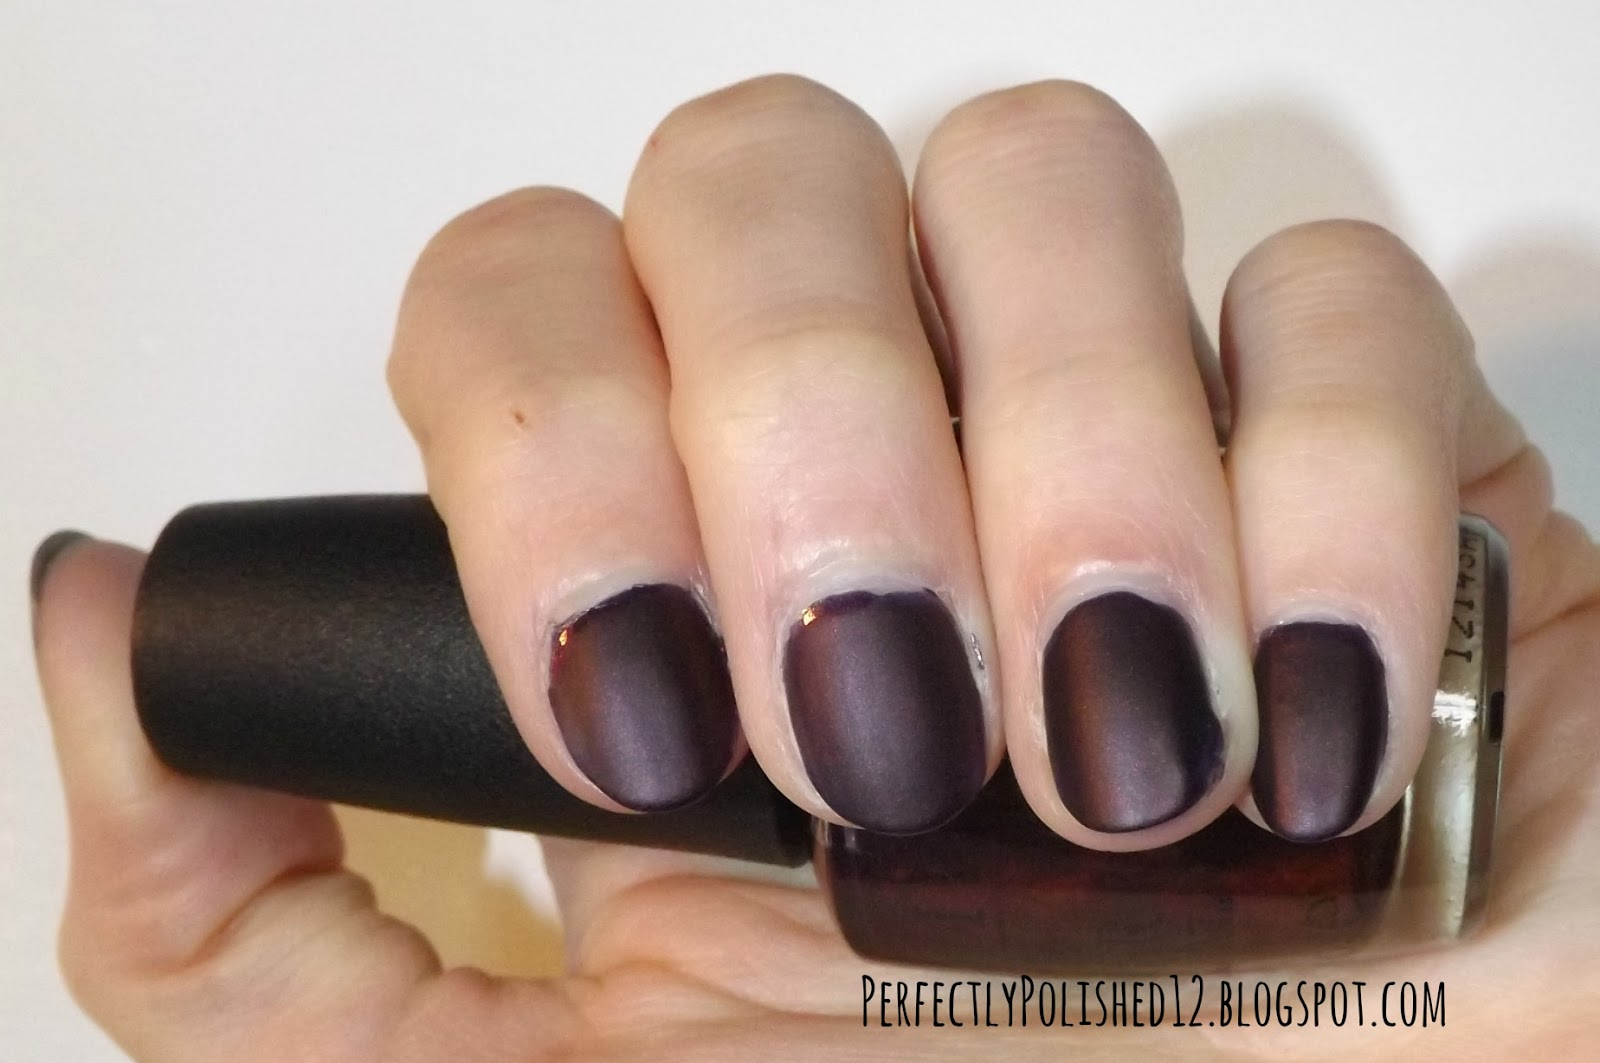 Perfectly Polished 12: Sally Hansen Big Matte Top Coat